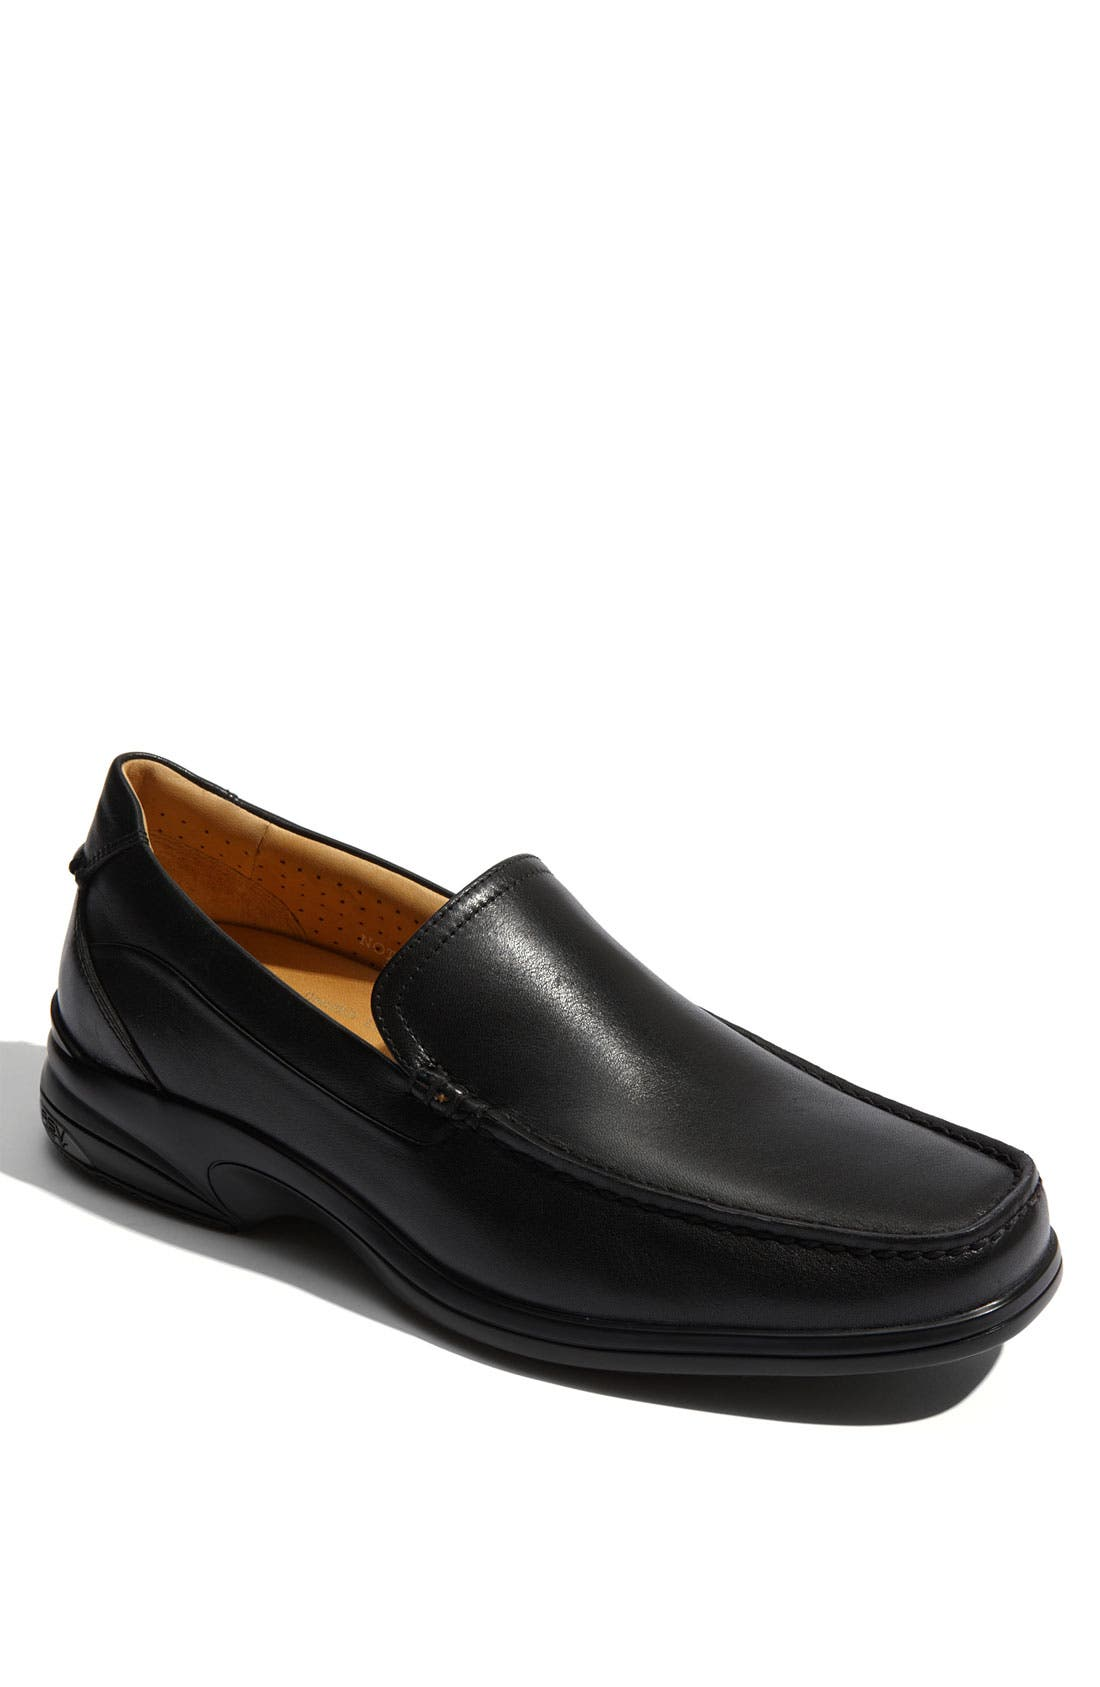 Alternate Image 1 Selected - Sperry Top-Sider® 'Gold ASV Venetian' Loafer (Men)